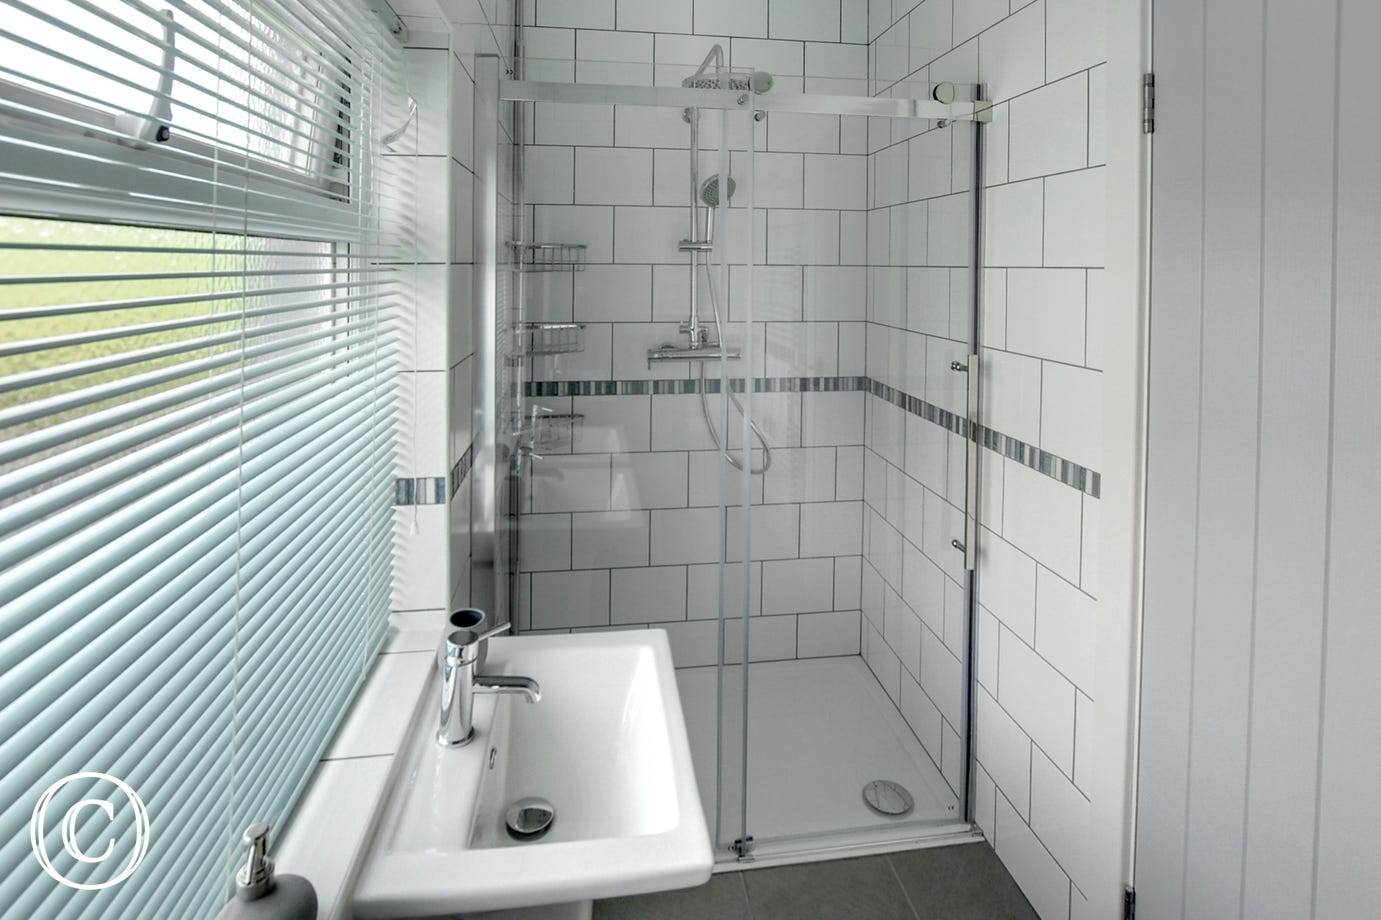 Shower room with WC and two wash basins